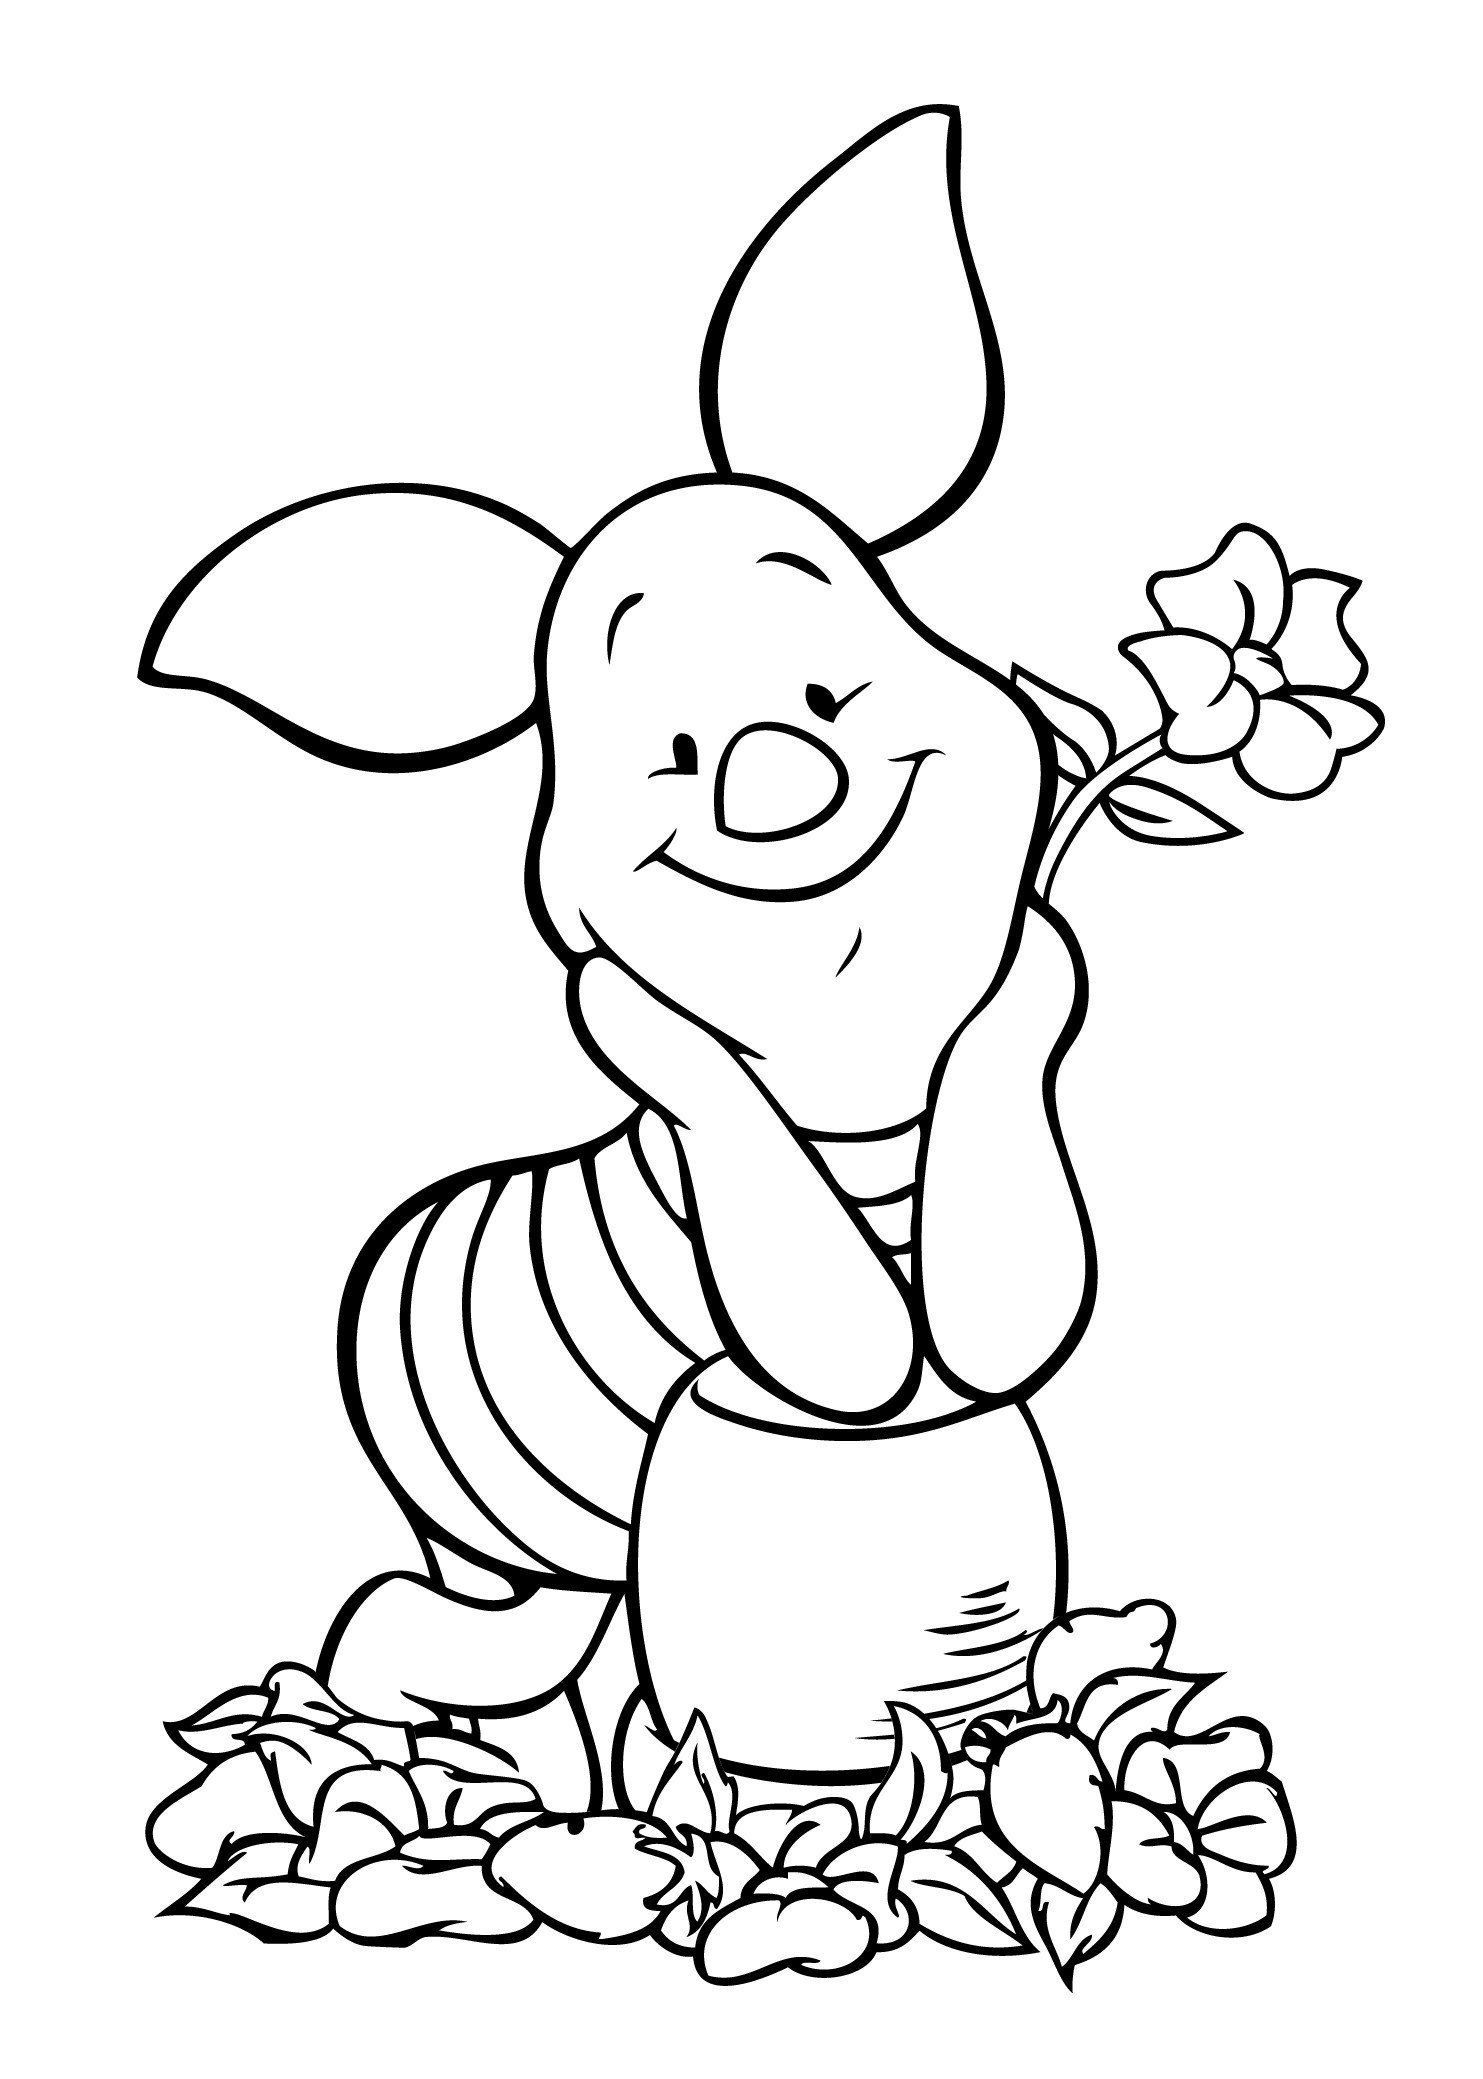 10+ Cute piglet coloring pages information